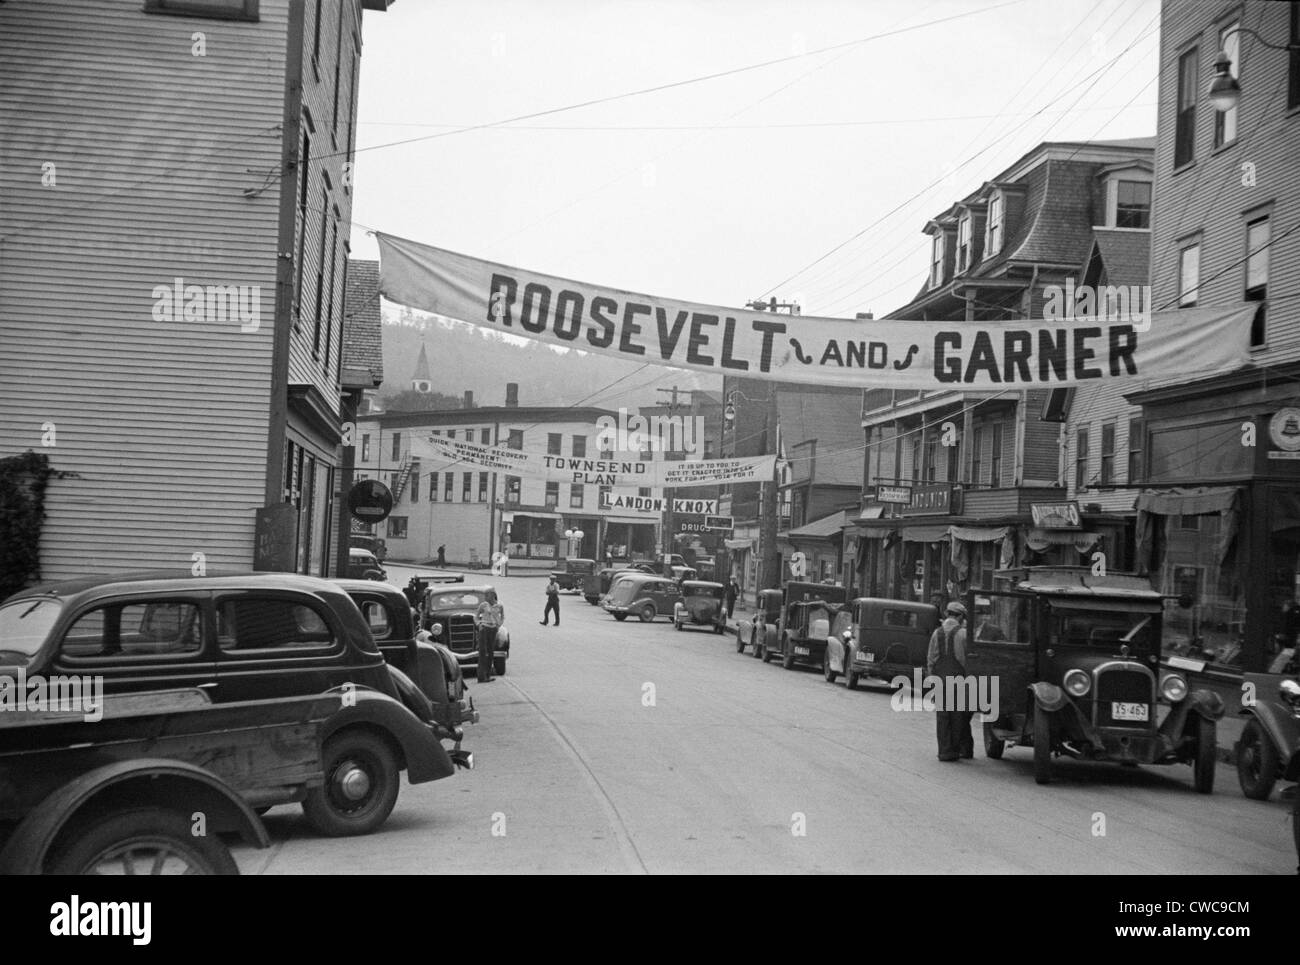 Signs for the 1936 election. Hardwick Vermont streets with campaign signs for 'Roosevelt and Garner' 'The - Stock Image